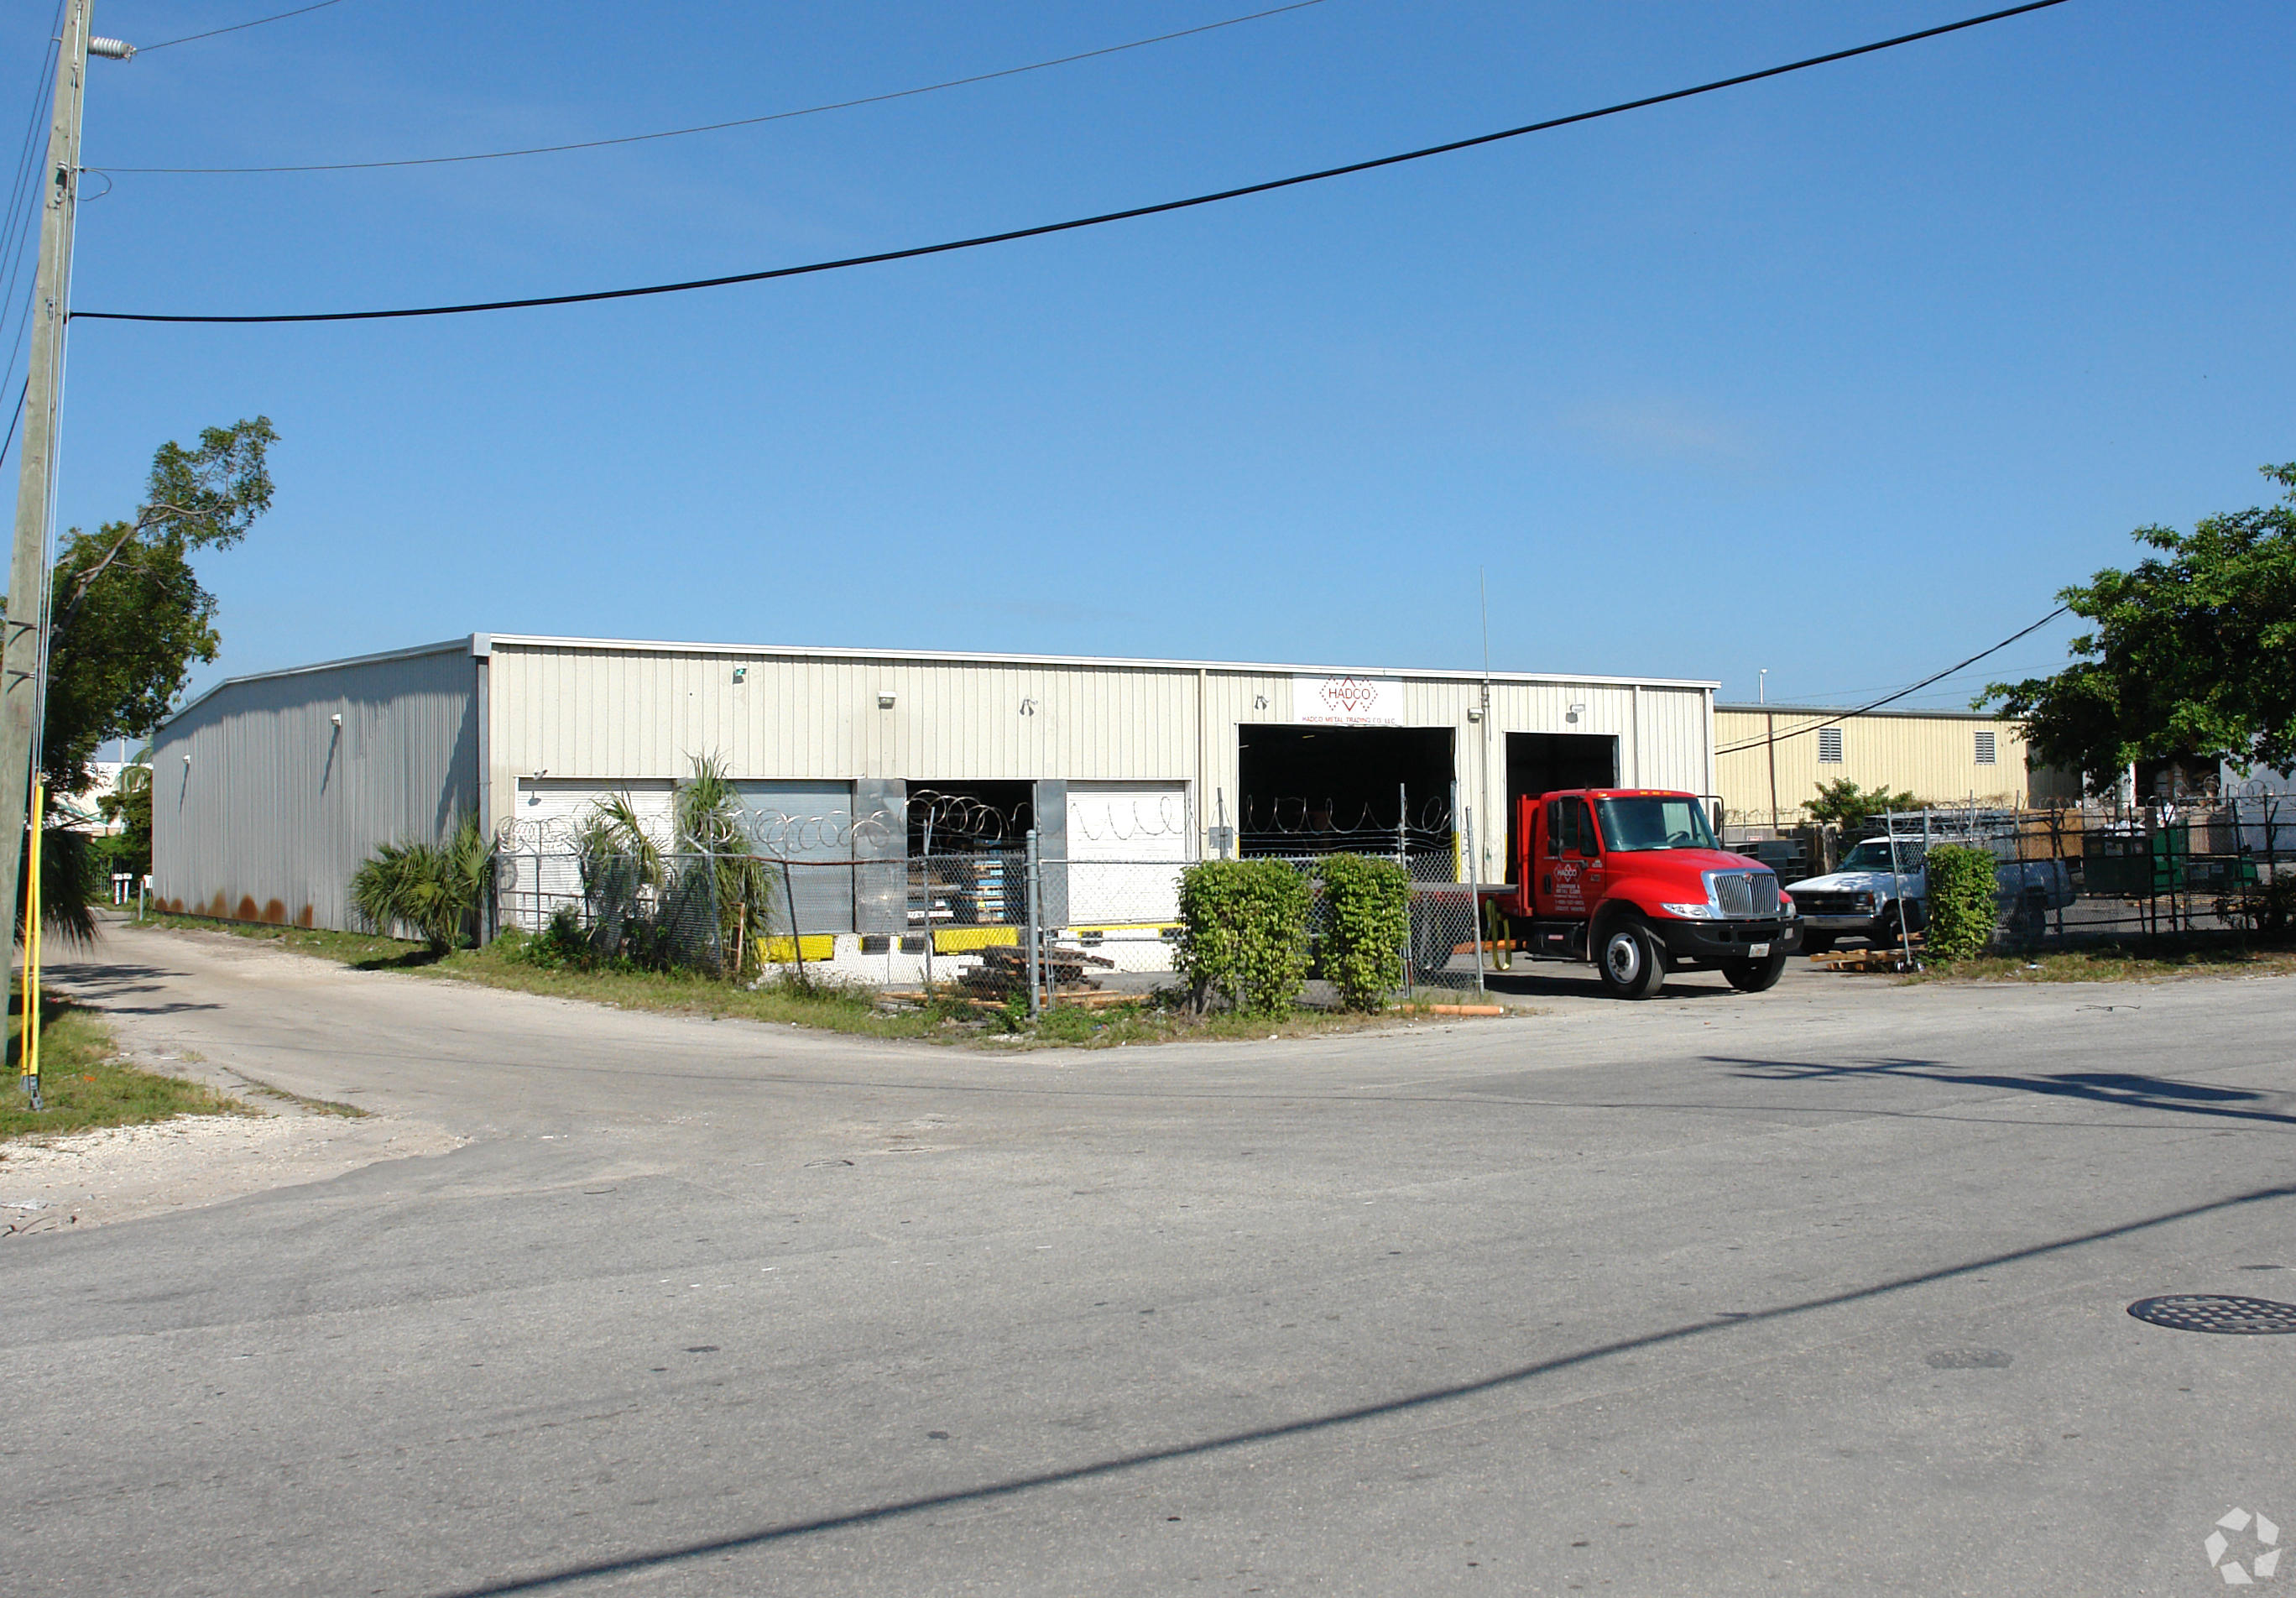 This warehouse is currently being rehabbed and will be ready for occupation December 2018.Located Close To The I95/Fort Lauderdale Executive Airport, 26,700sf Warehouse, Metal Construction/ 2 x Grade Level Access & 4 Docks, 20' Ceiling Height. There Is Still Time To Choose Your Specification/Layout.